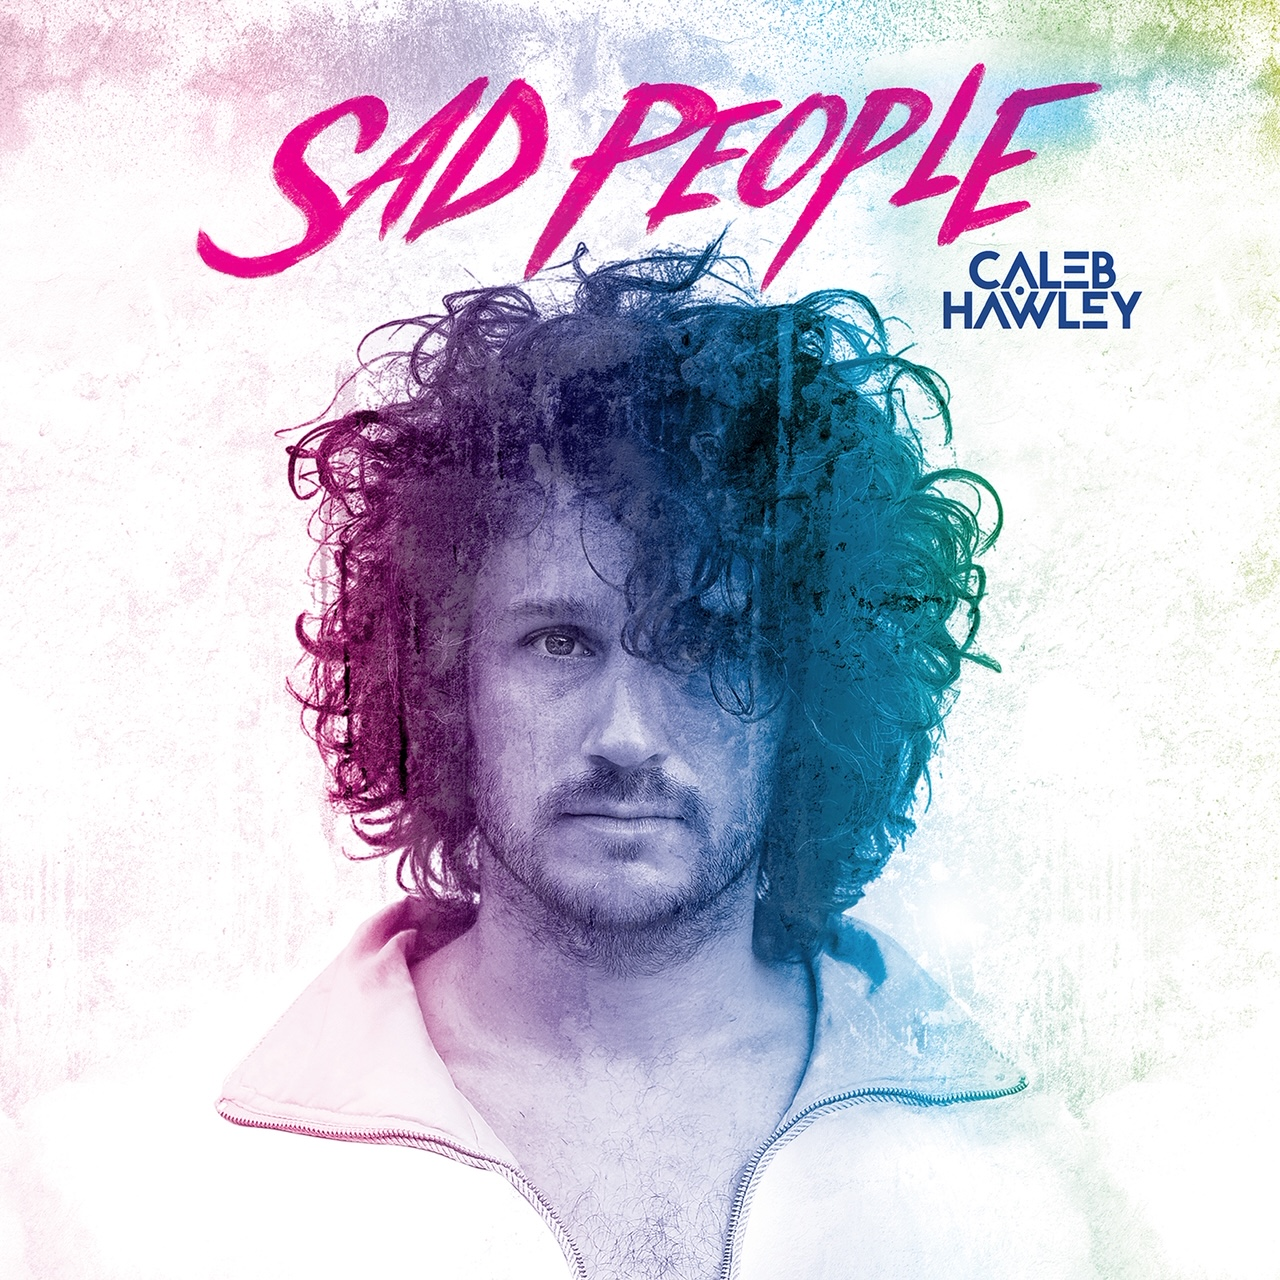 Sad People - Caleb Hawley